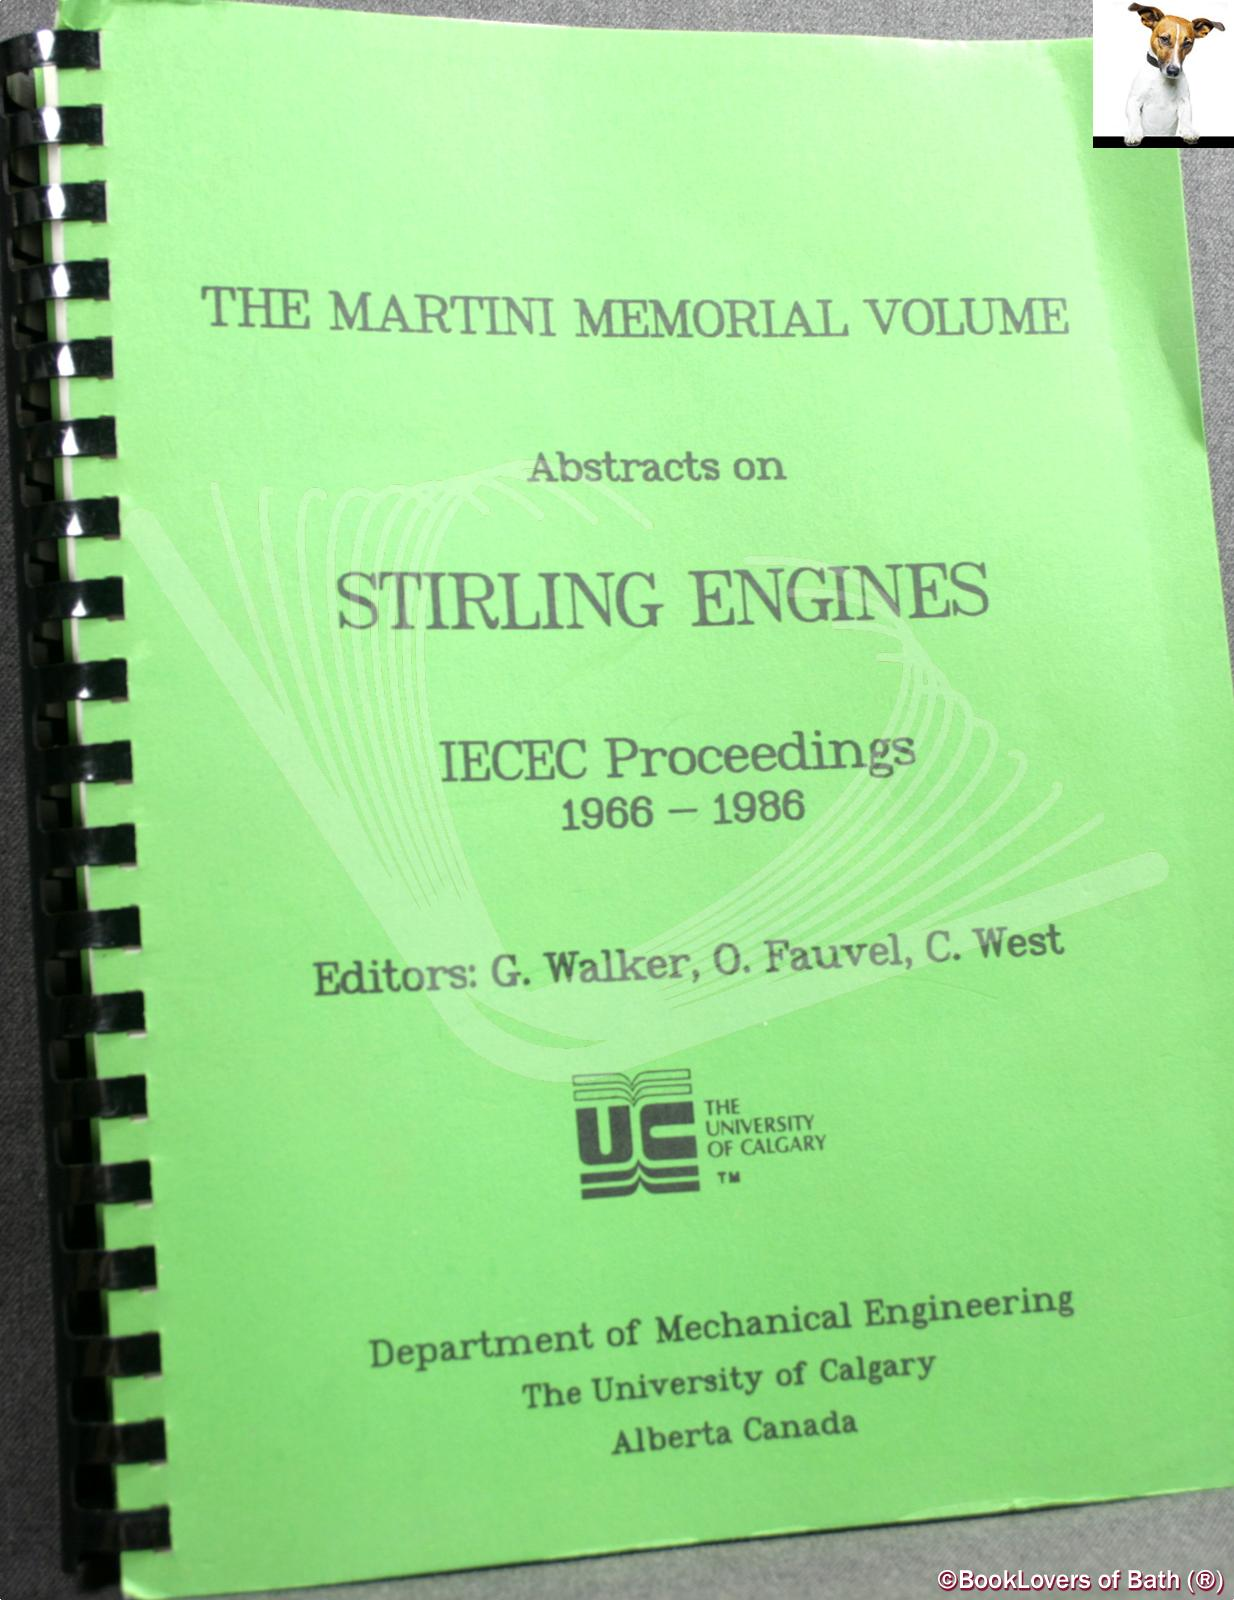 Martini-Memorial-Volume-Abstracts-on-Stirling-Engines-Collected-from-the-Proceed